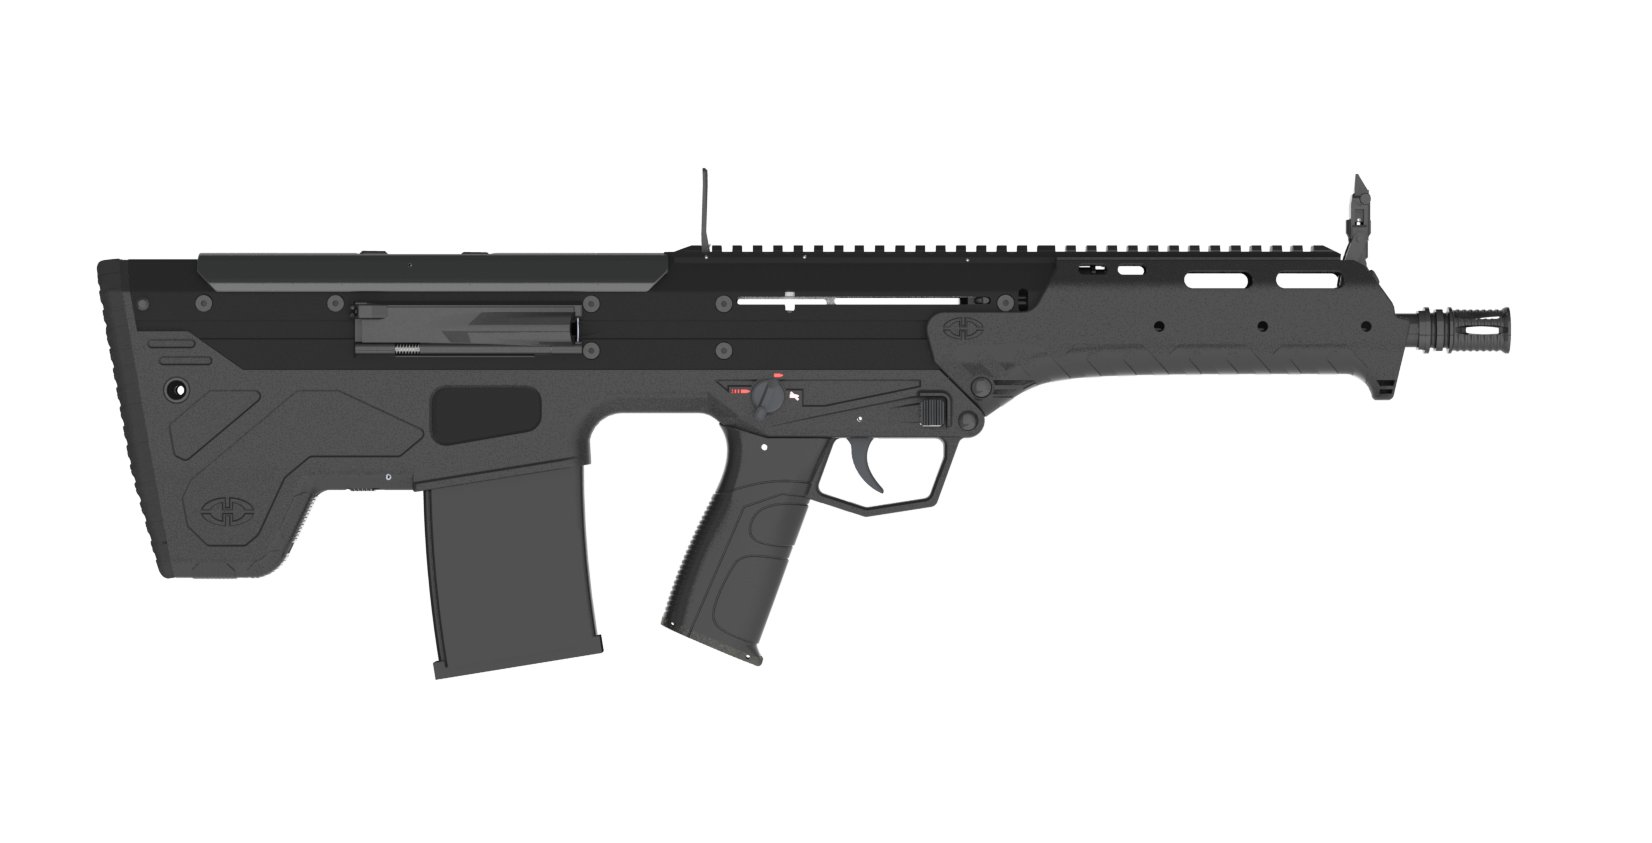 Desert Tech DT MDR and MDR C Micro Dynamic Rifle Modular Multi Caliber Semi Auto Bullpup Anti Materiel Sniper Rifle Carbine Systems 2 Desert Tech DT MDR and MDR C (Micro Dynamic Rifle) Modular, Multi Caliber and Ambidextrous Semi Auto Bullpup Combat/Tactical Rifle/Carbine Systems for Tactical Ops